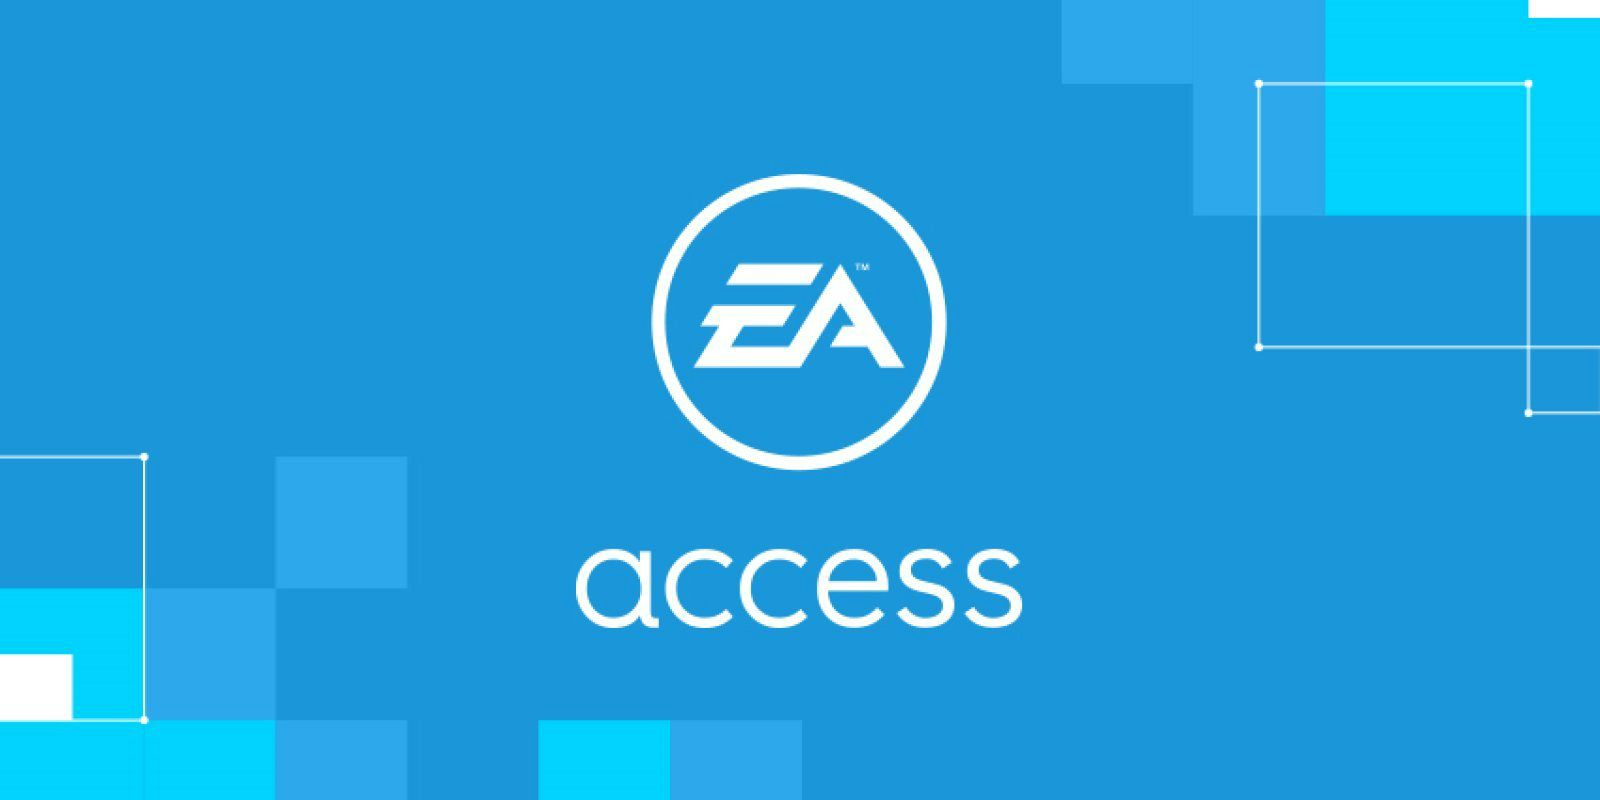 EA Play - Wikipedia